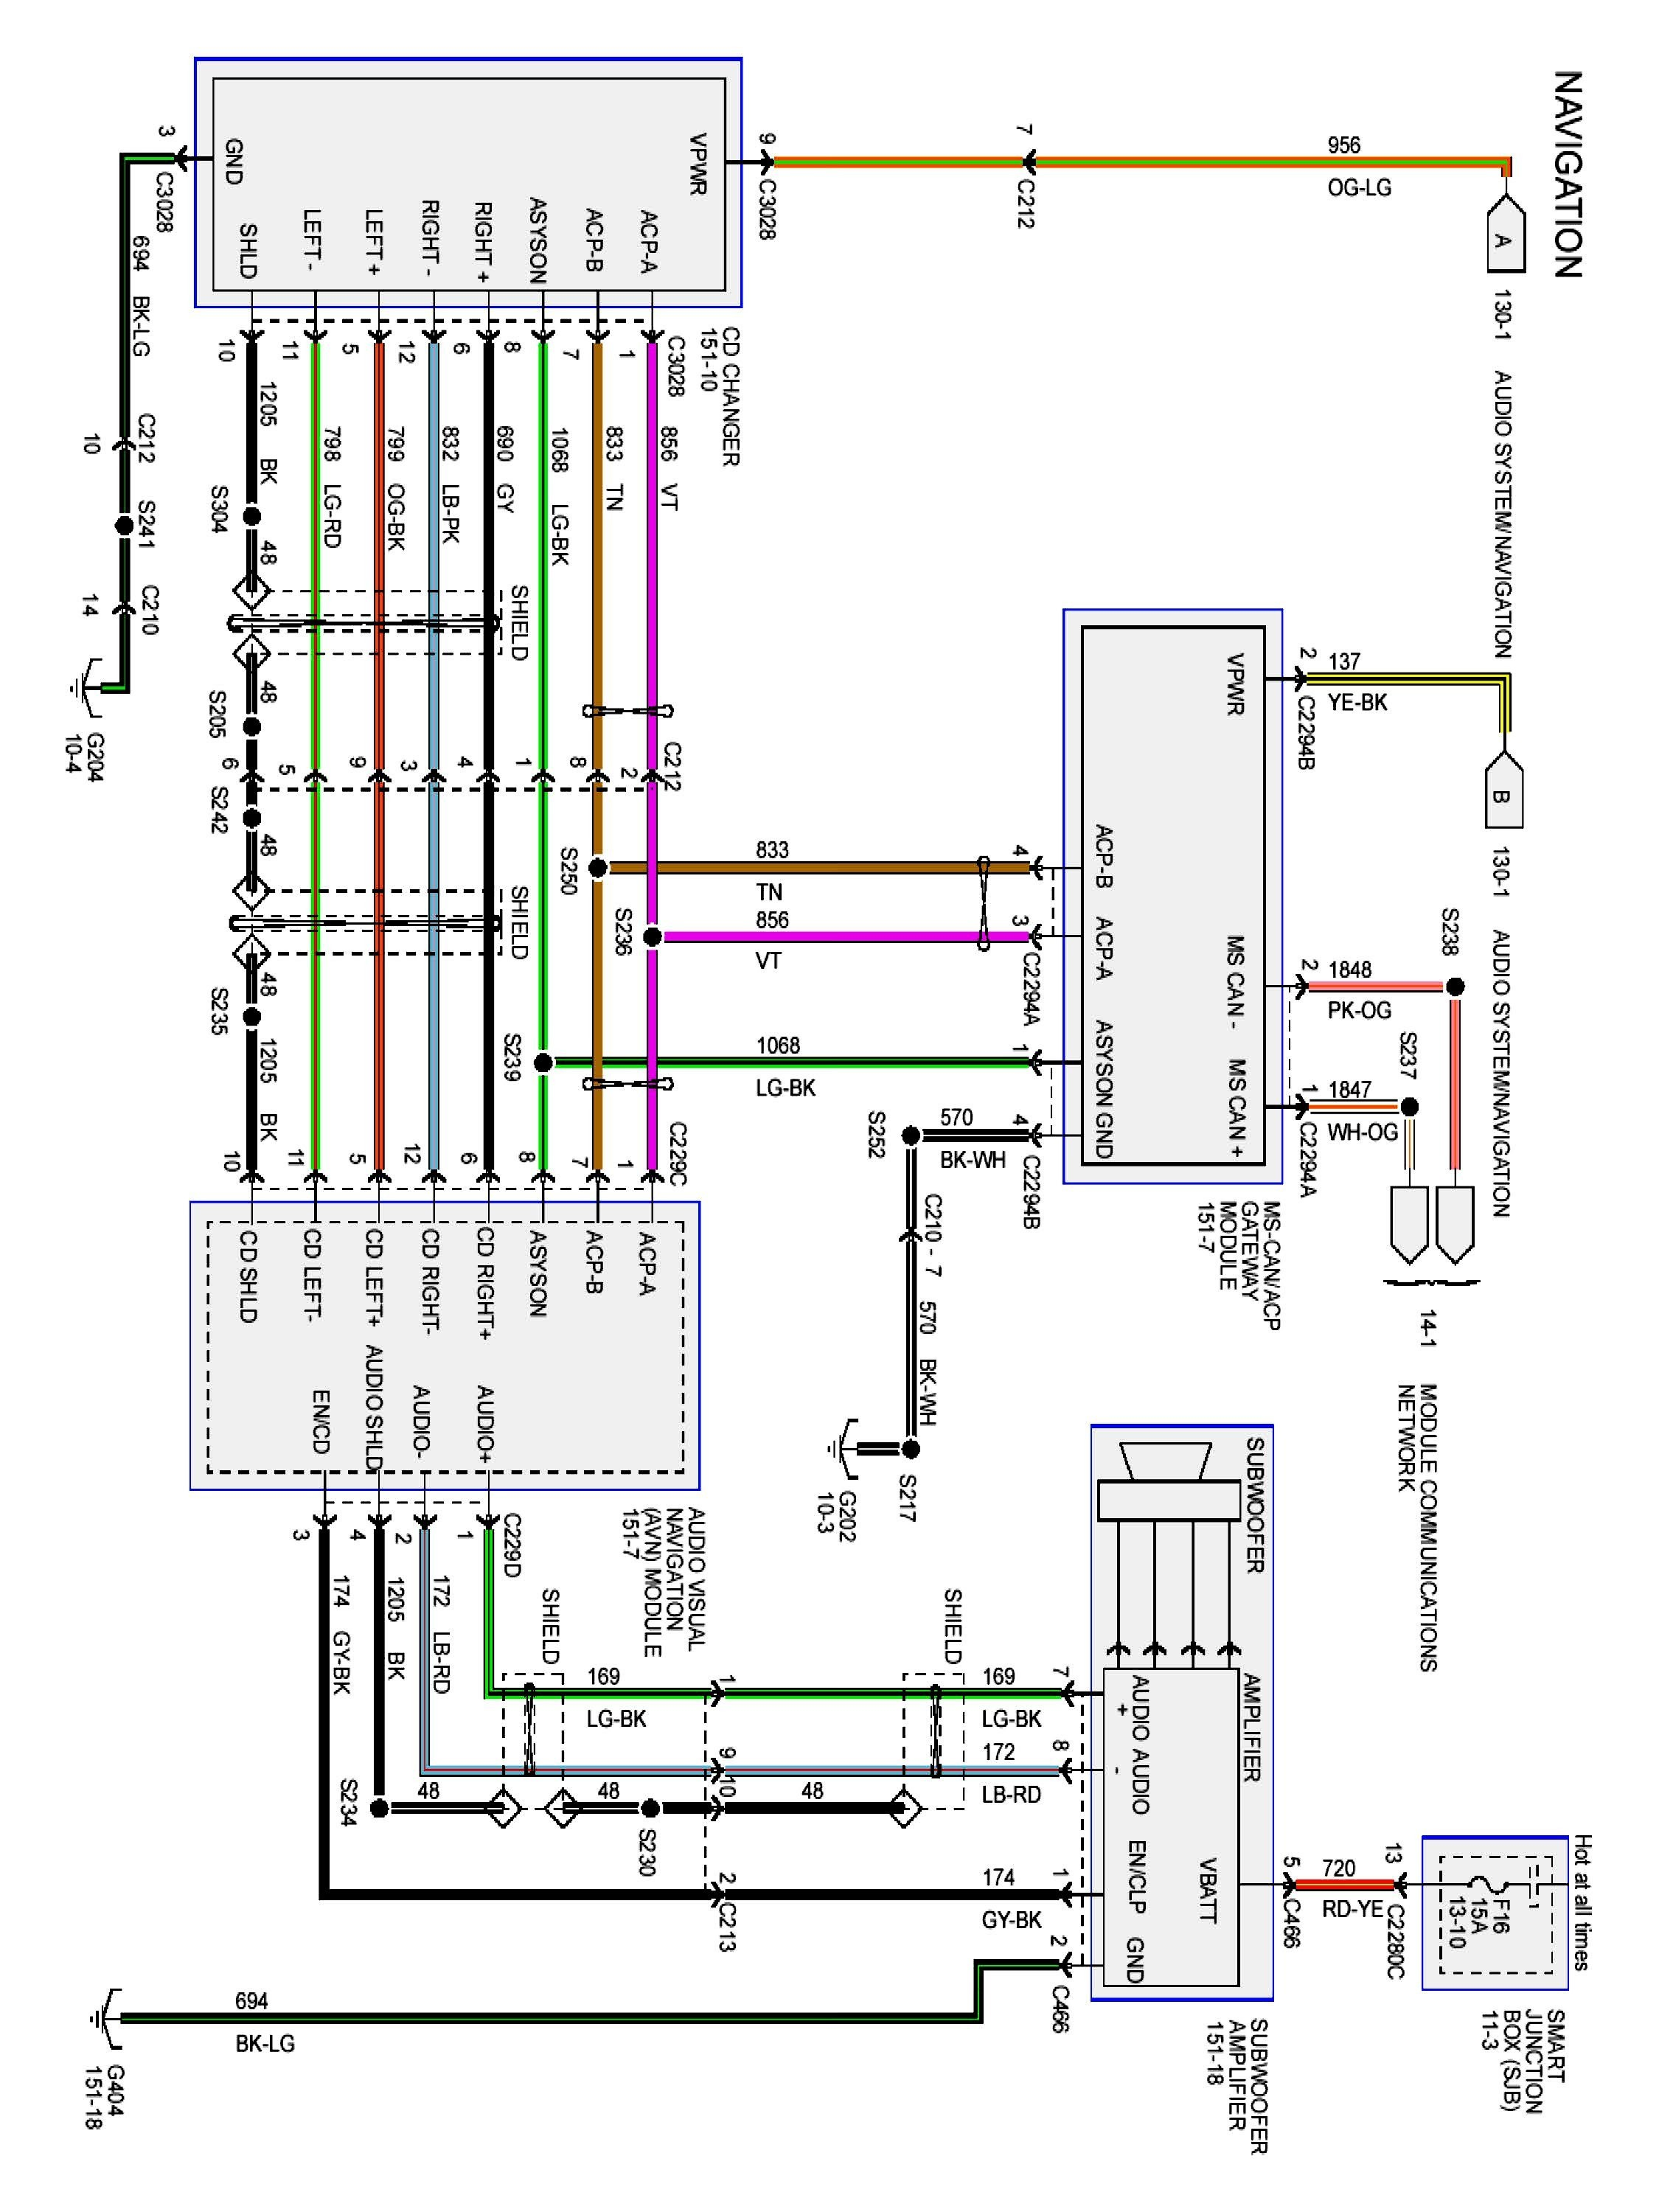 2005 Suzuki Xl7 Trailer Wiring Diagram from detoxicrecenze.com